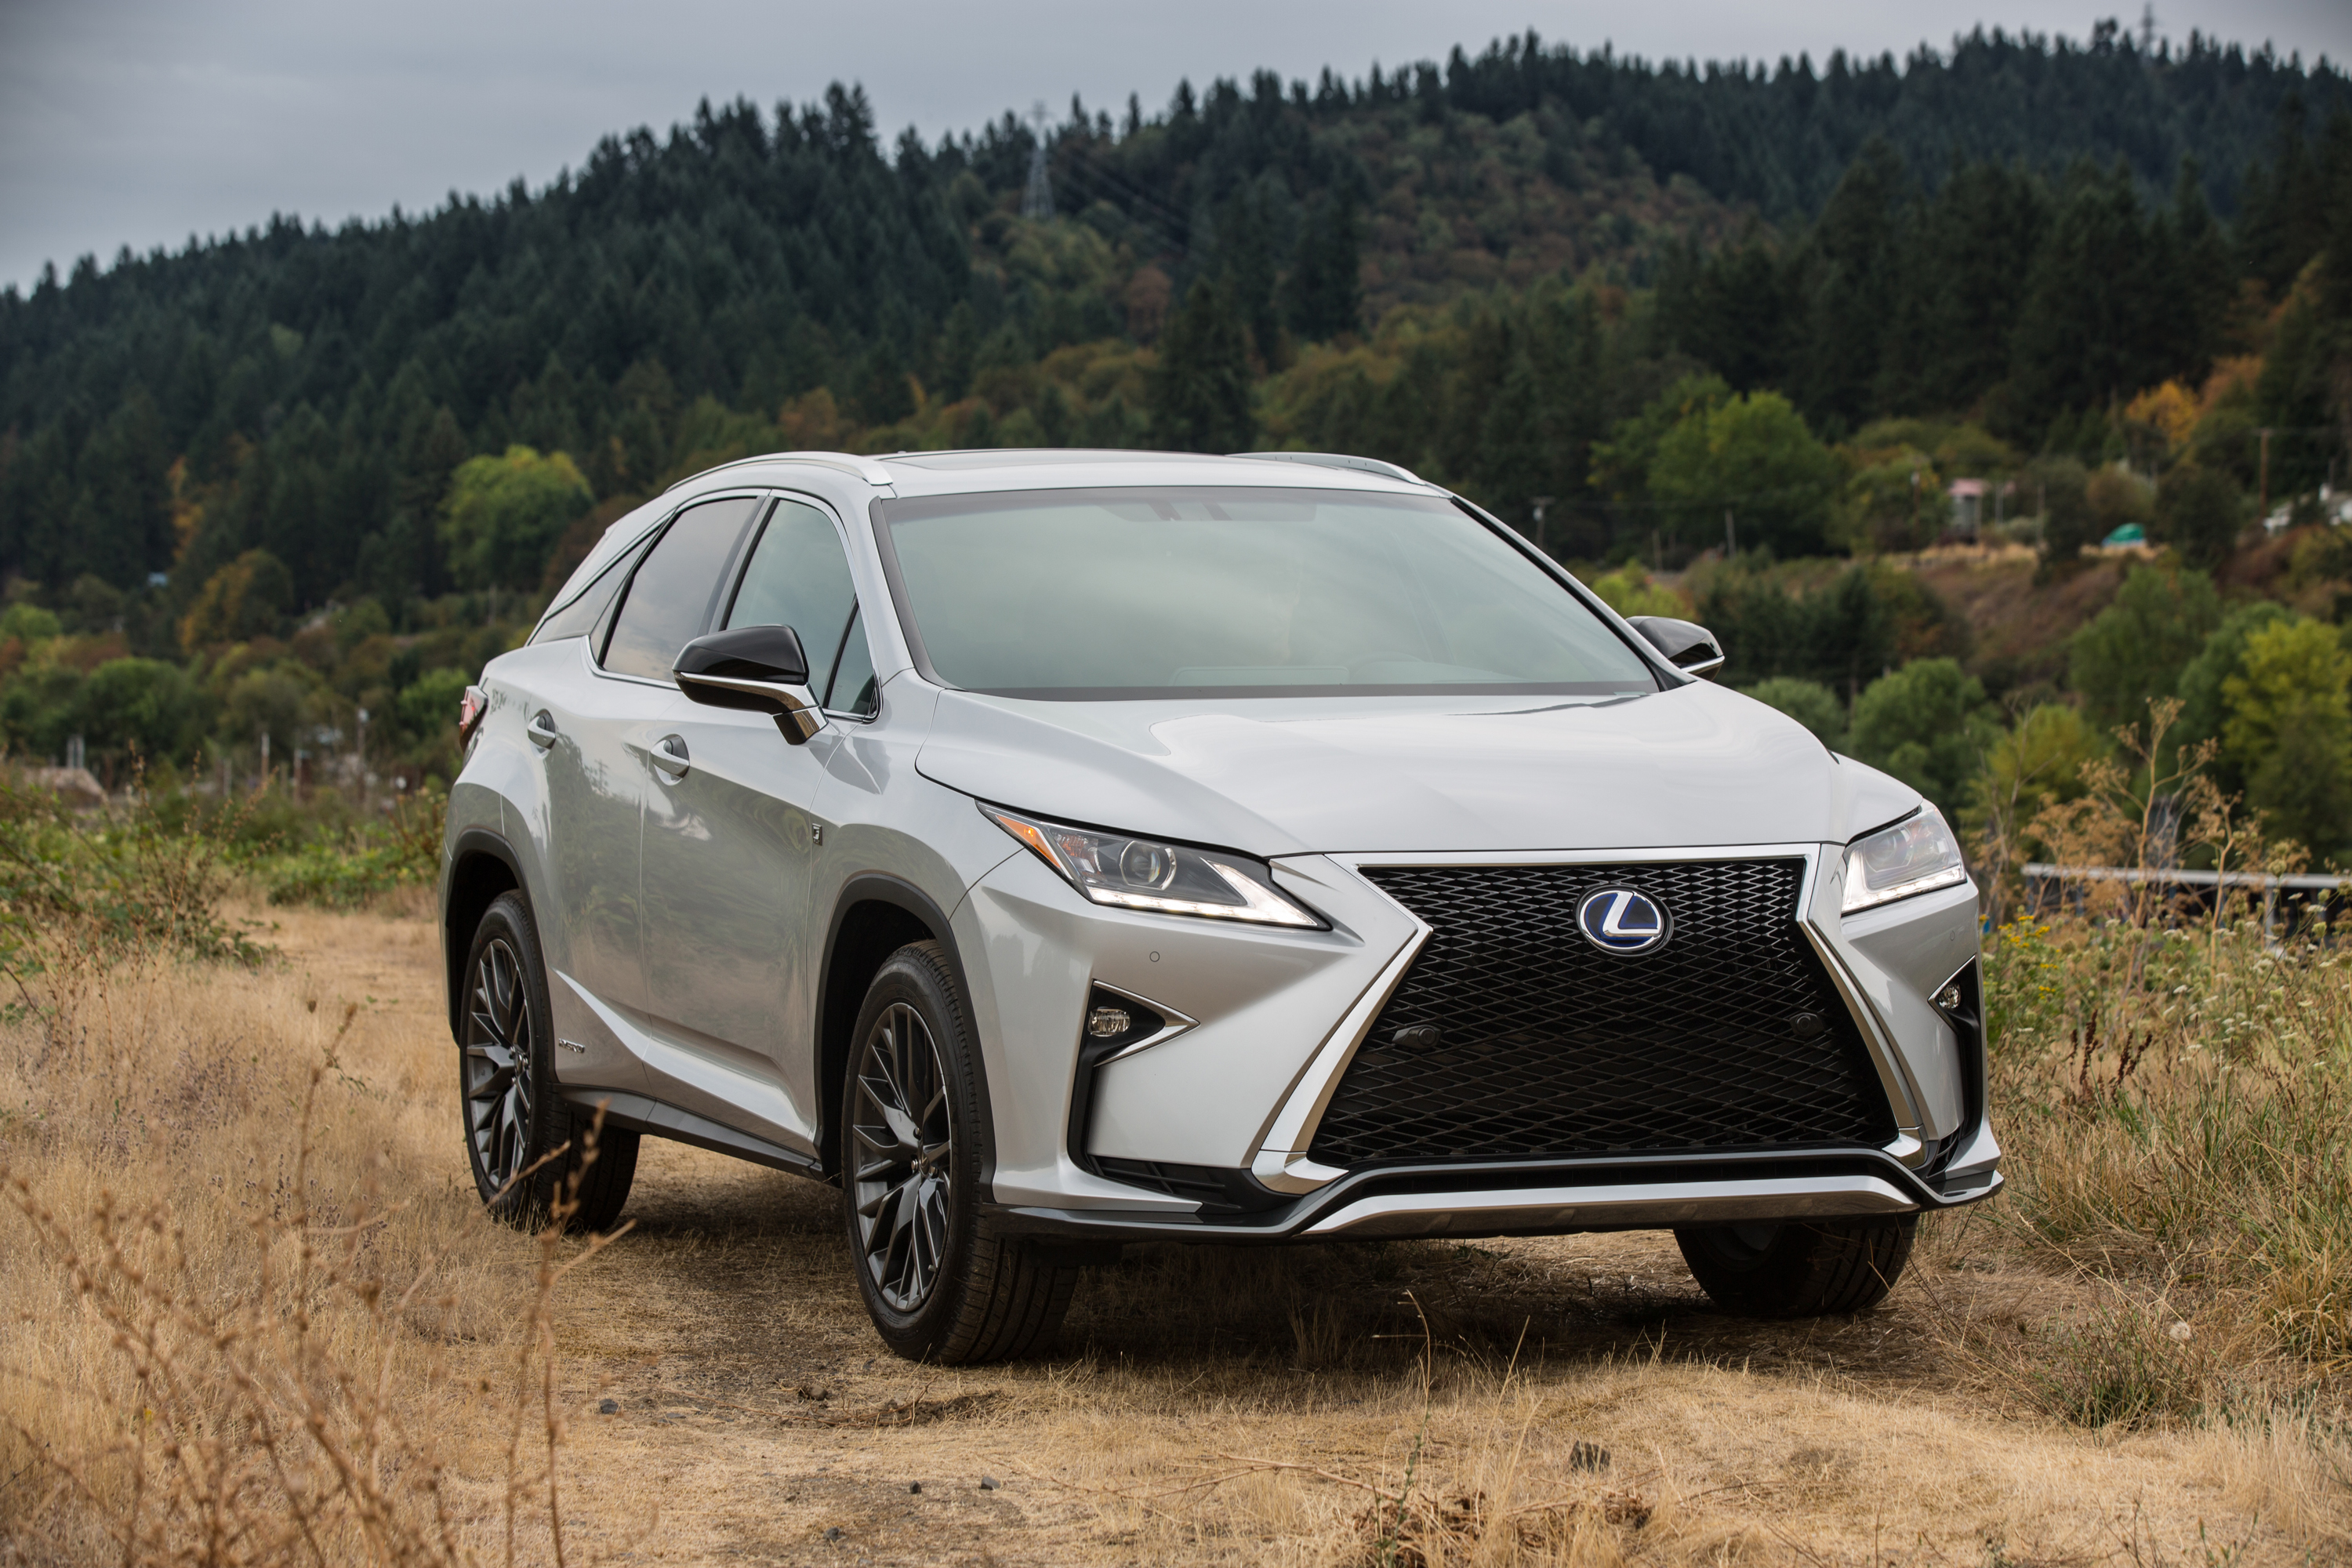 All-New Fourth Generation 2016 Lexus RX Redefines Segment with Style